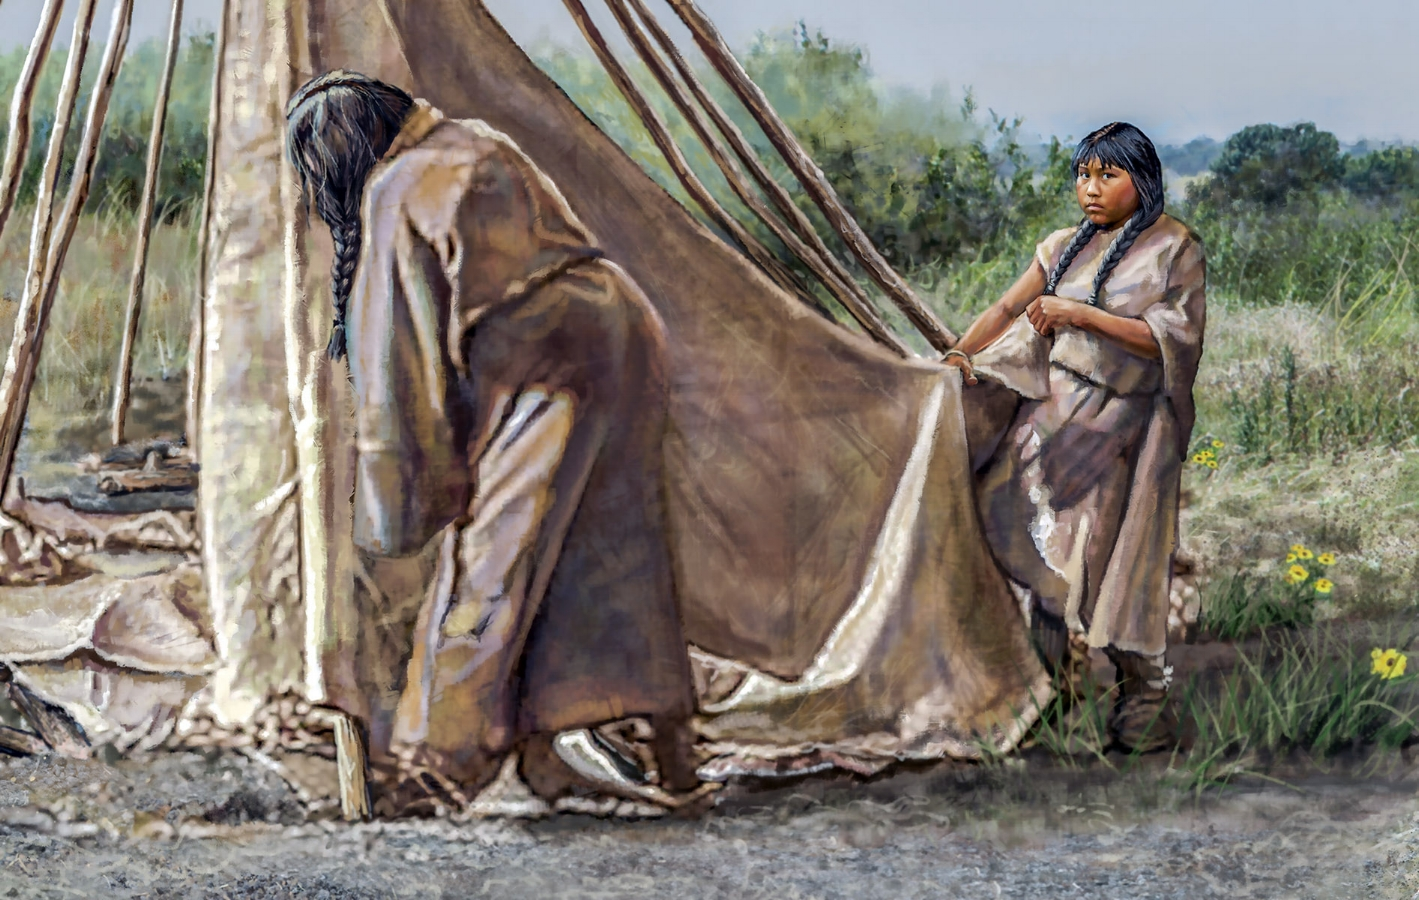 """Raising the Tepee""- mural detail • 20' 9"" by 9' • Mural was painted digitally in Photoshop w/traditional painting techniques • Forney Spellman Museum, Forney, TX. © KT"